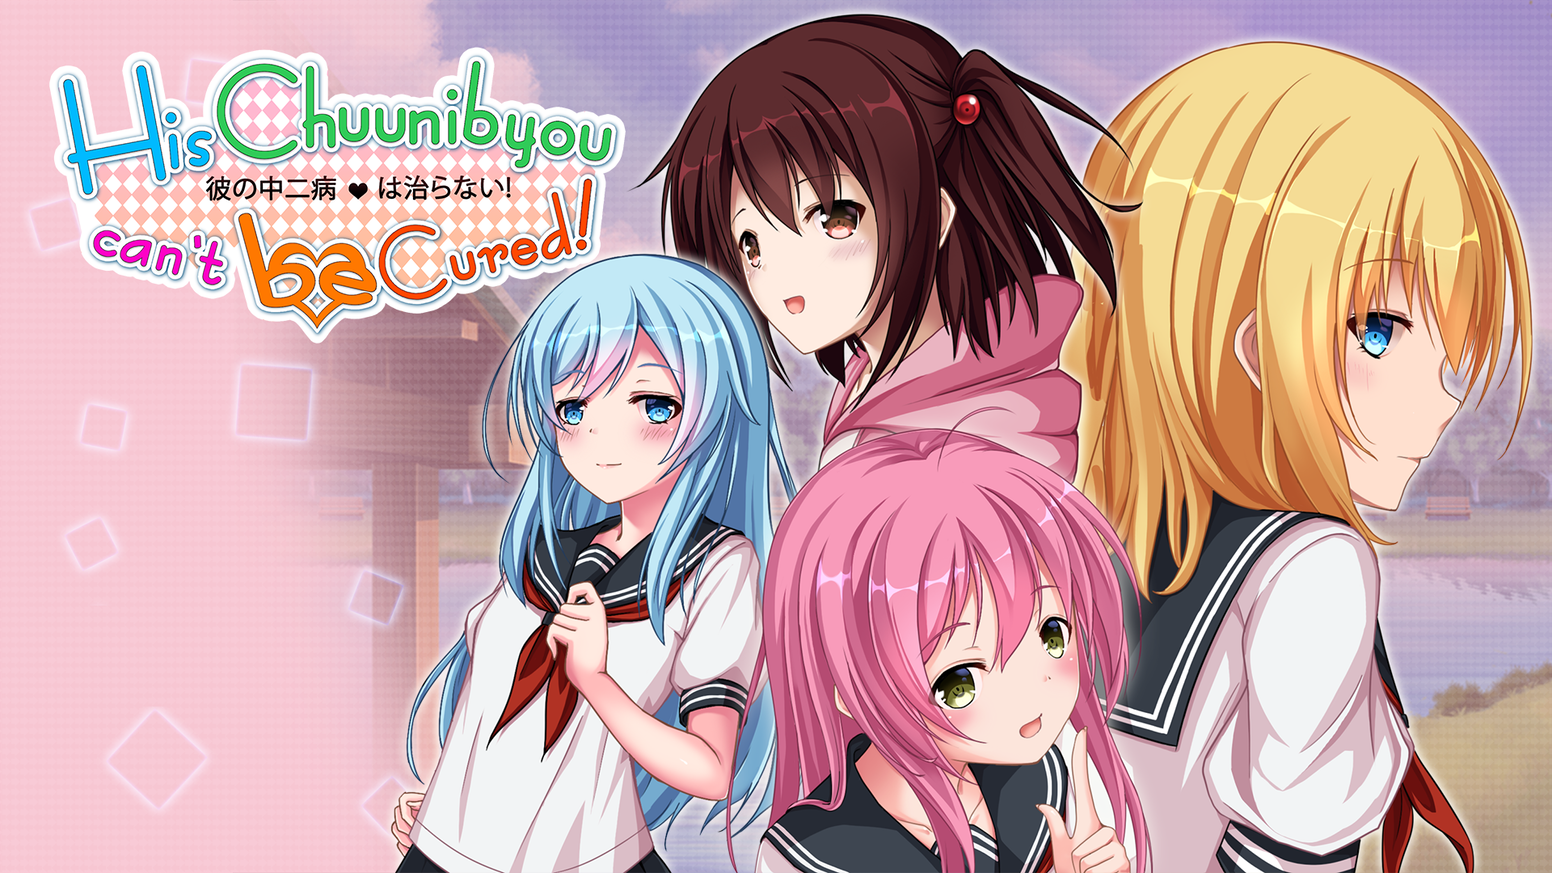 Kachuna is the Bishoujo Visual Novel Dating Sim game of Jun Mizushima, a high school student who suffers from 'eighth grade syndrome'.